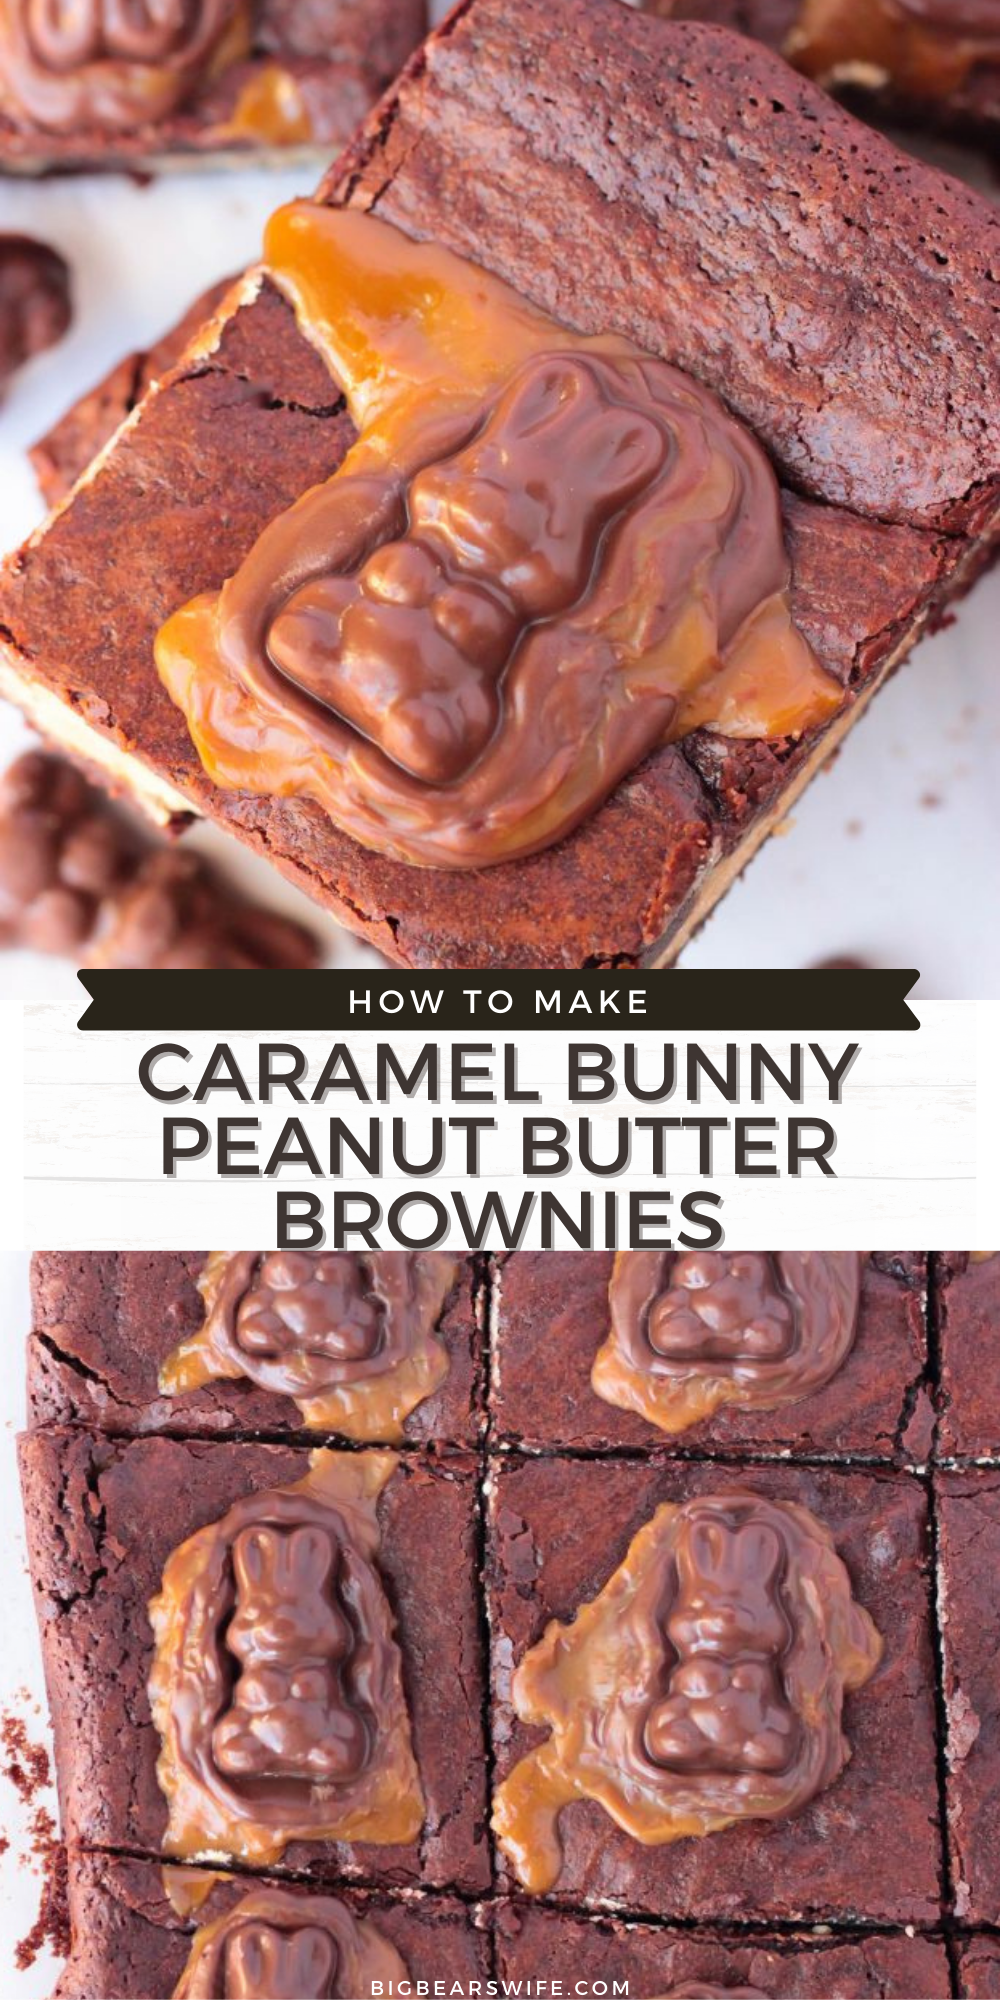 Peanut Butter Stuffed Chocolate Brownies with a chocolate caramel bunny melted on top, what's not to love? These Caramel Bunny Peanut Butter Brownies are the perfect addition to any Easter dessert spread!   via @bigbearswife